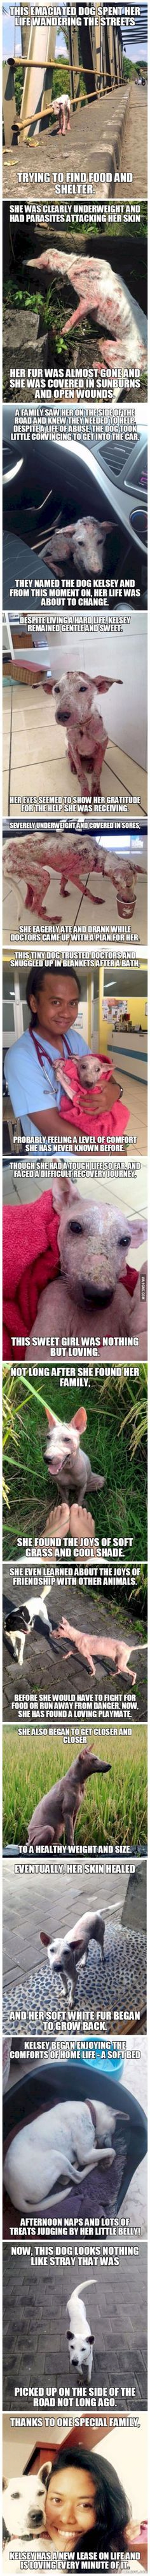 A story of a stray dog... Faith in humanity restored.